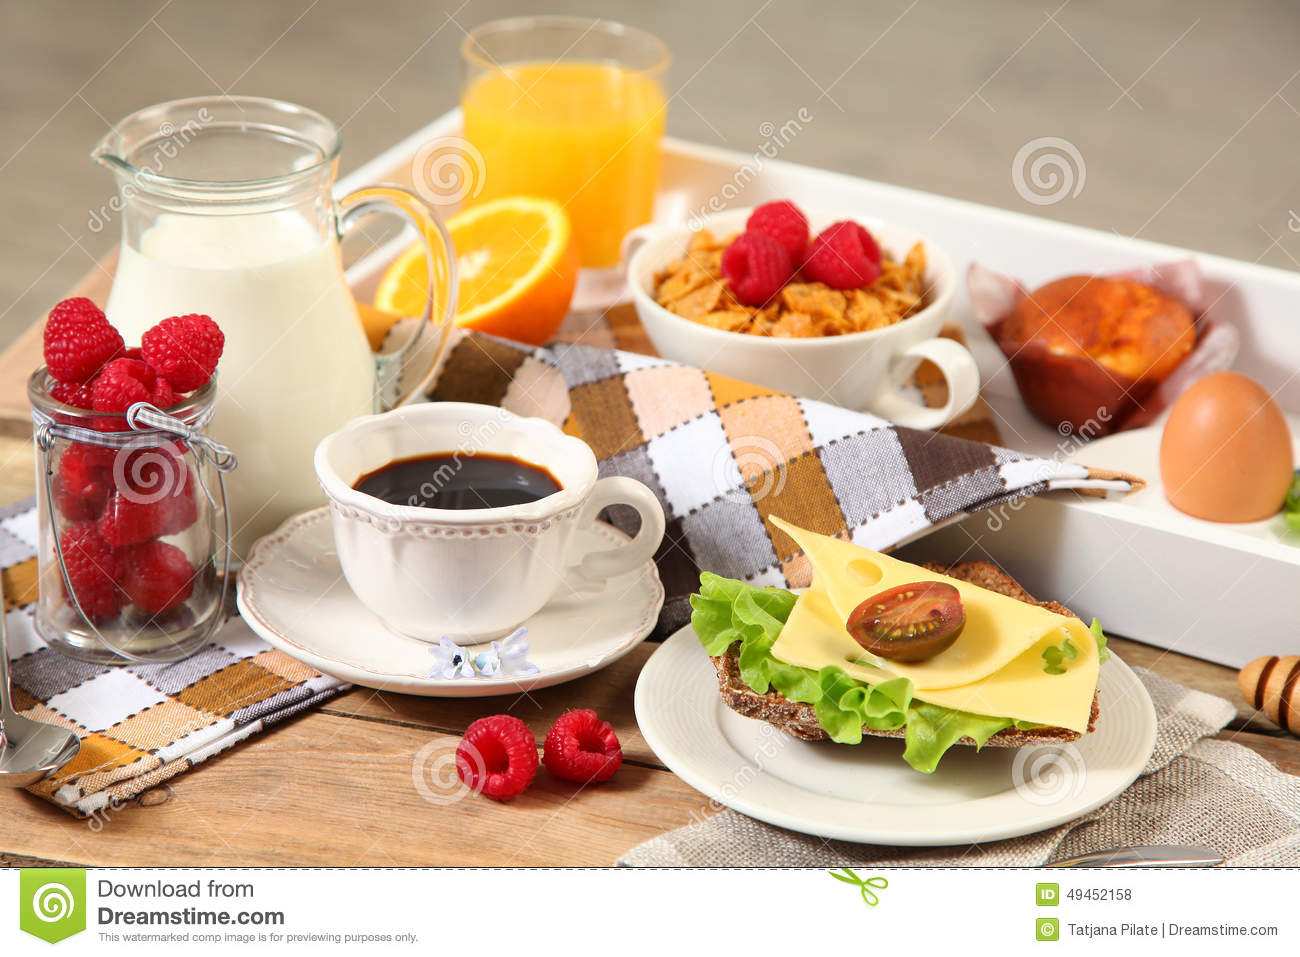 Continental Breakfast Stock Photo - Image: 49452158